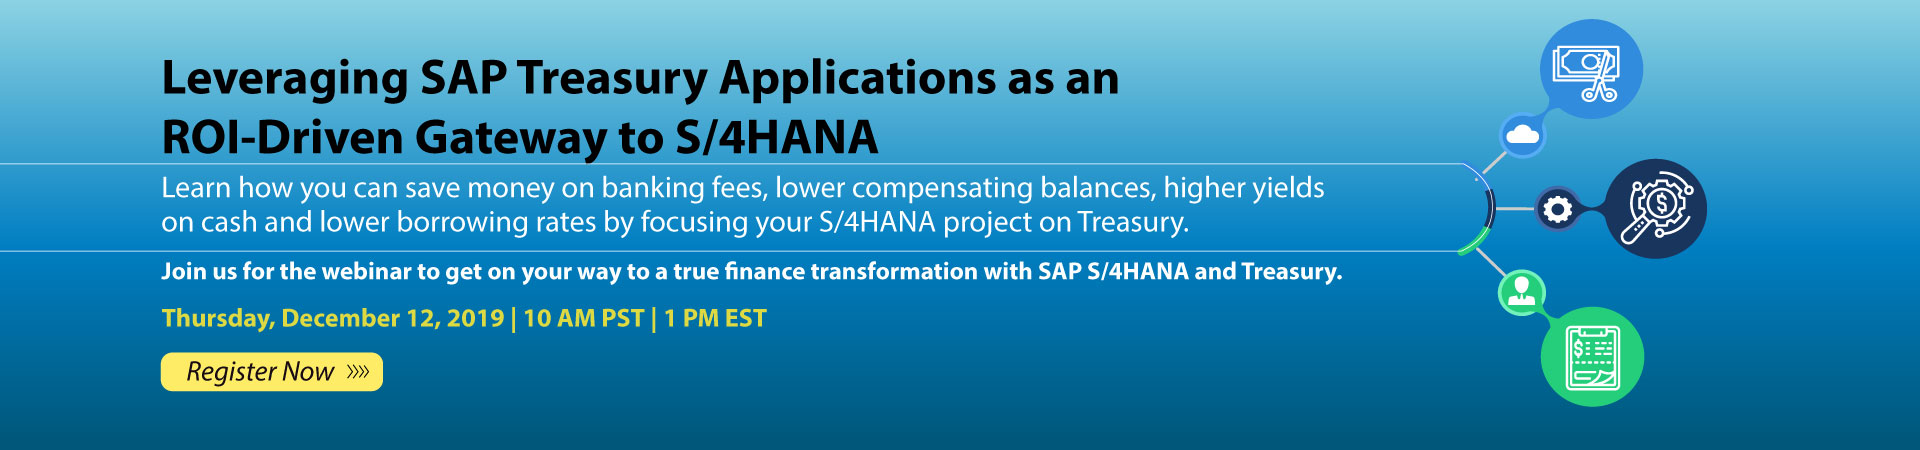 Leveraging SAP Treasury Applications as an ROI-Driven Gateway to S/4HANA